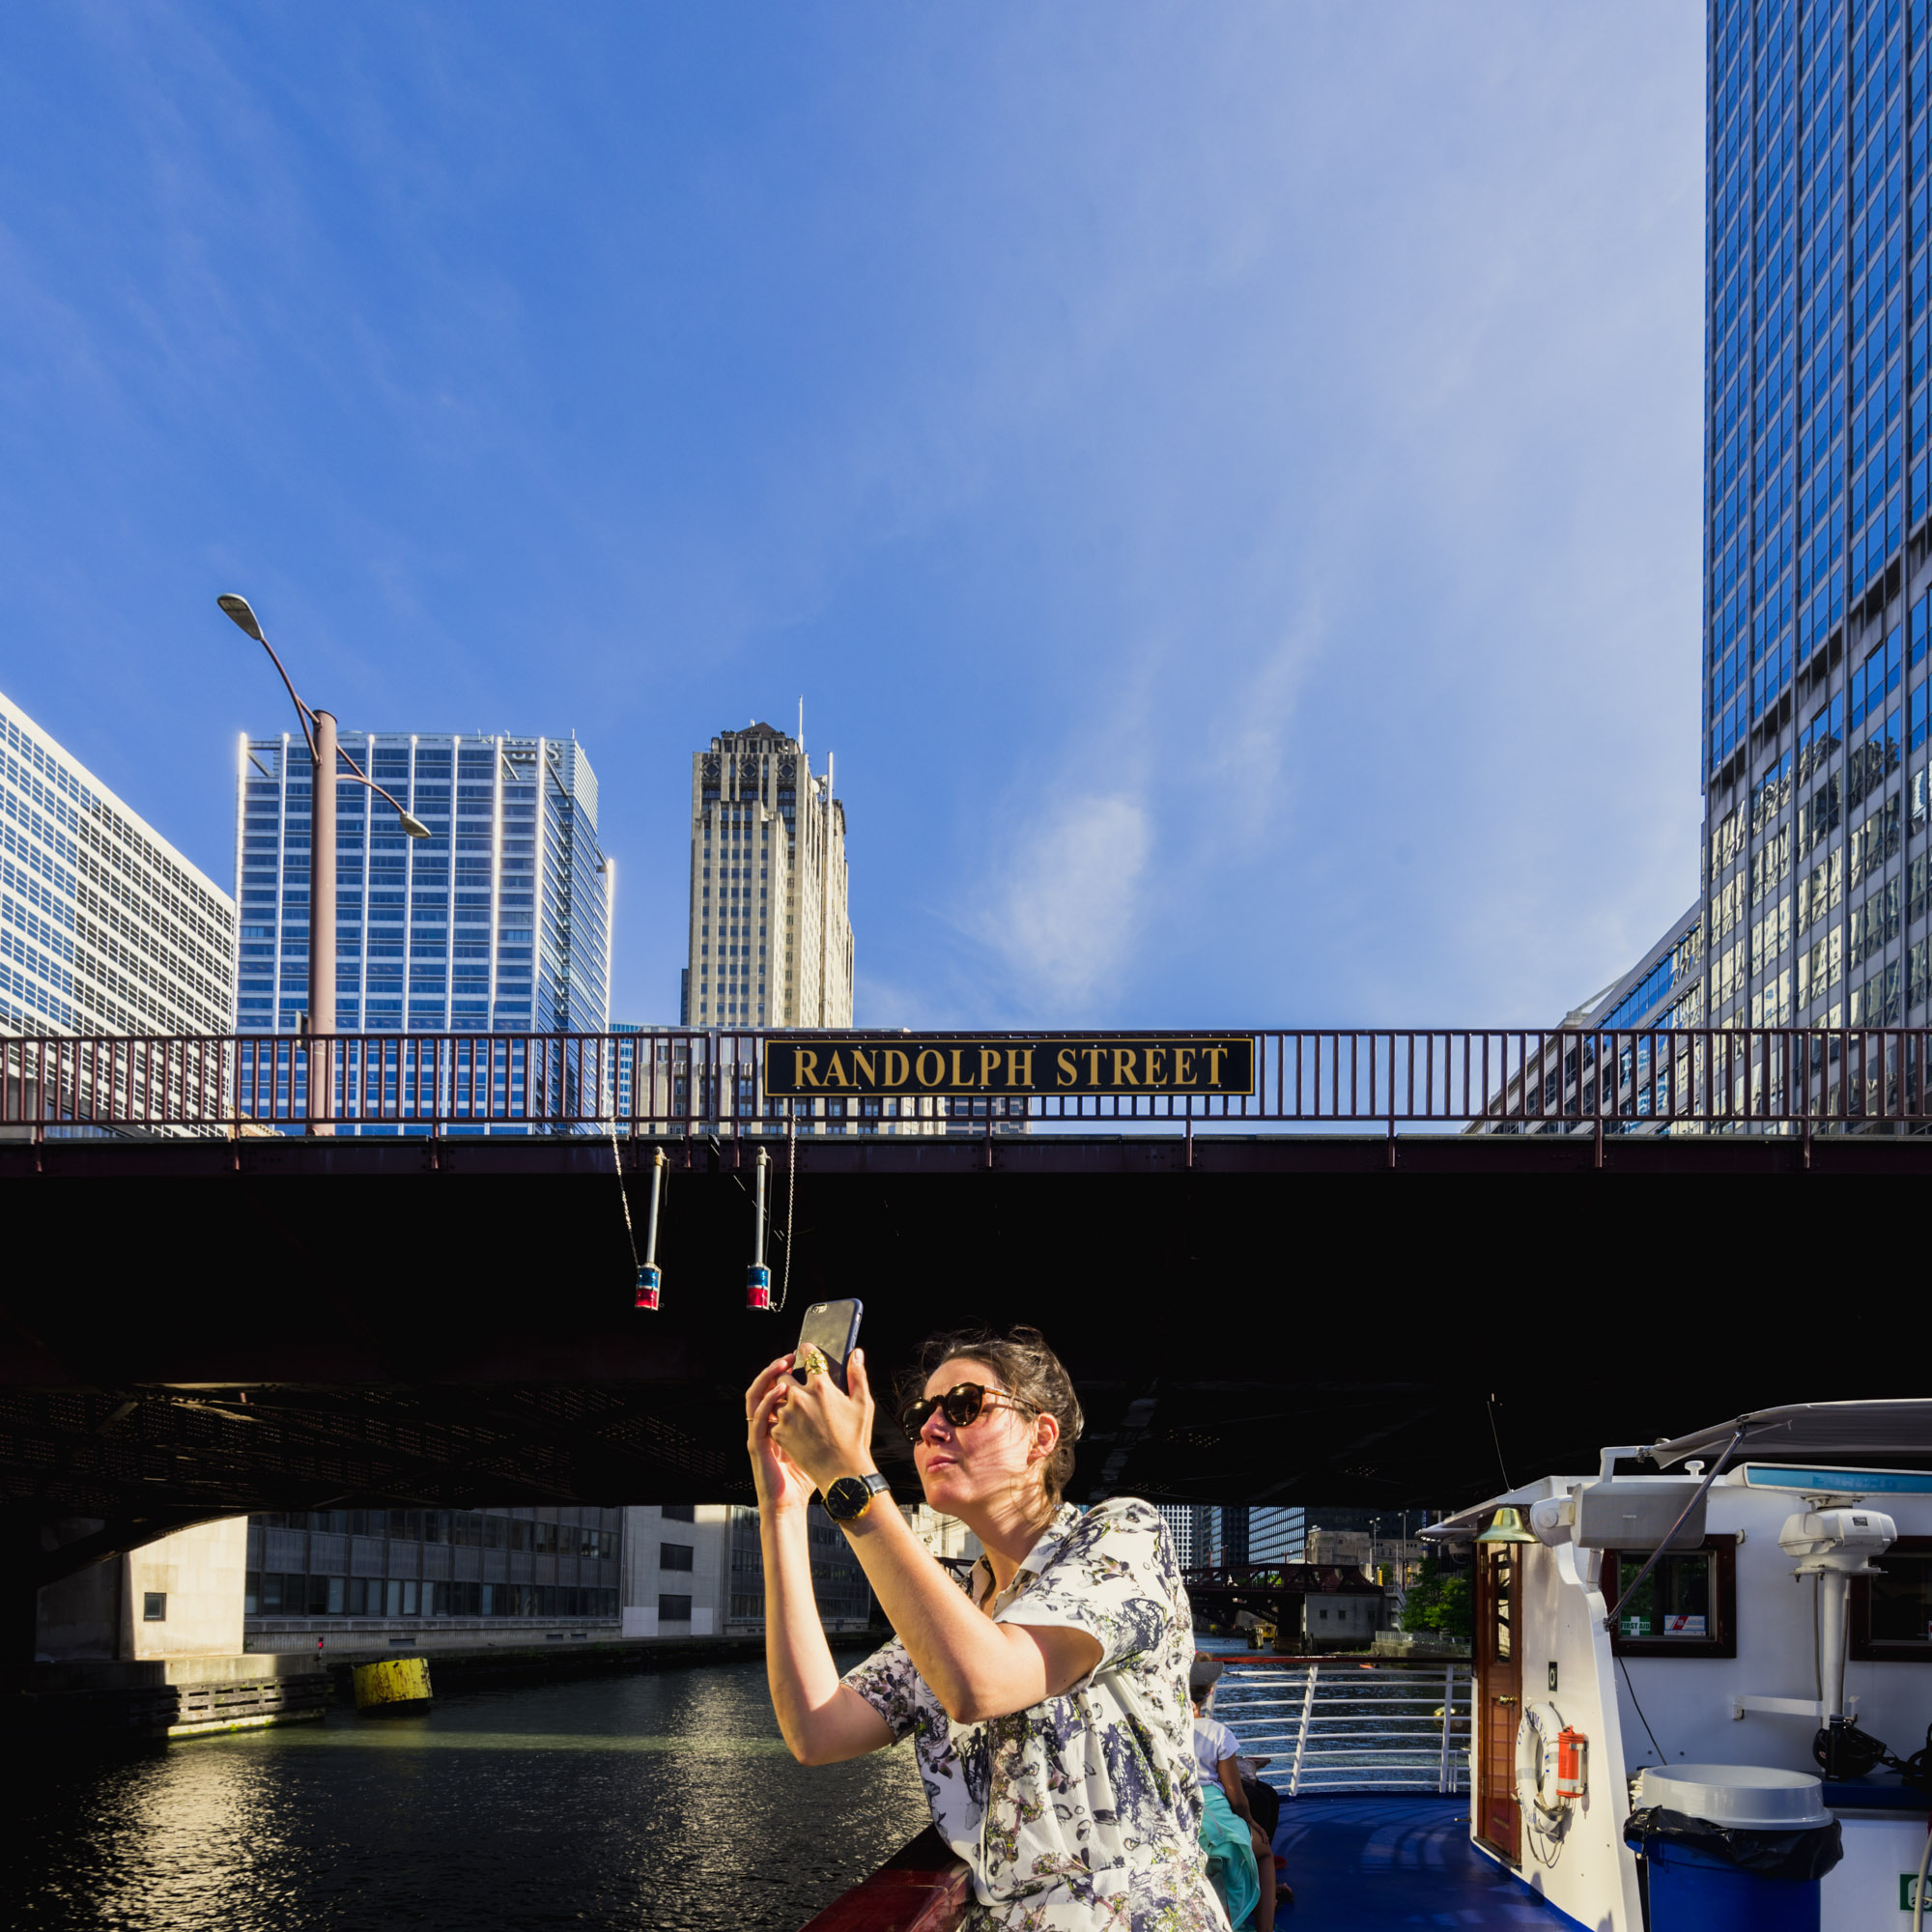 Jeff On The Road - Travel - Chicago - Chicago Architecture Foundation River Cruise - All photos are under Copyright © 2017 Jeff Frenette Photography / dezjeff. To use the photos, please contact me at dezjeff@me.com.